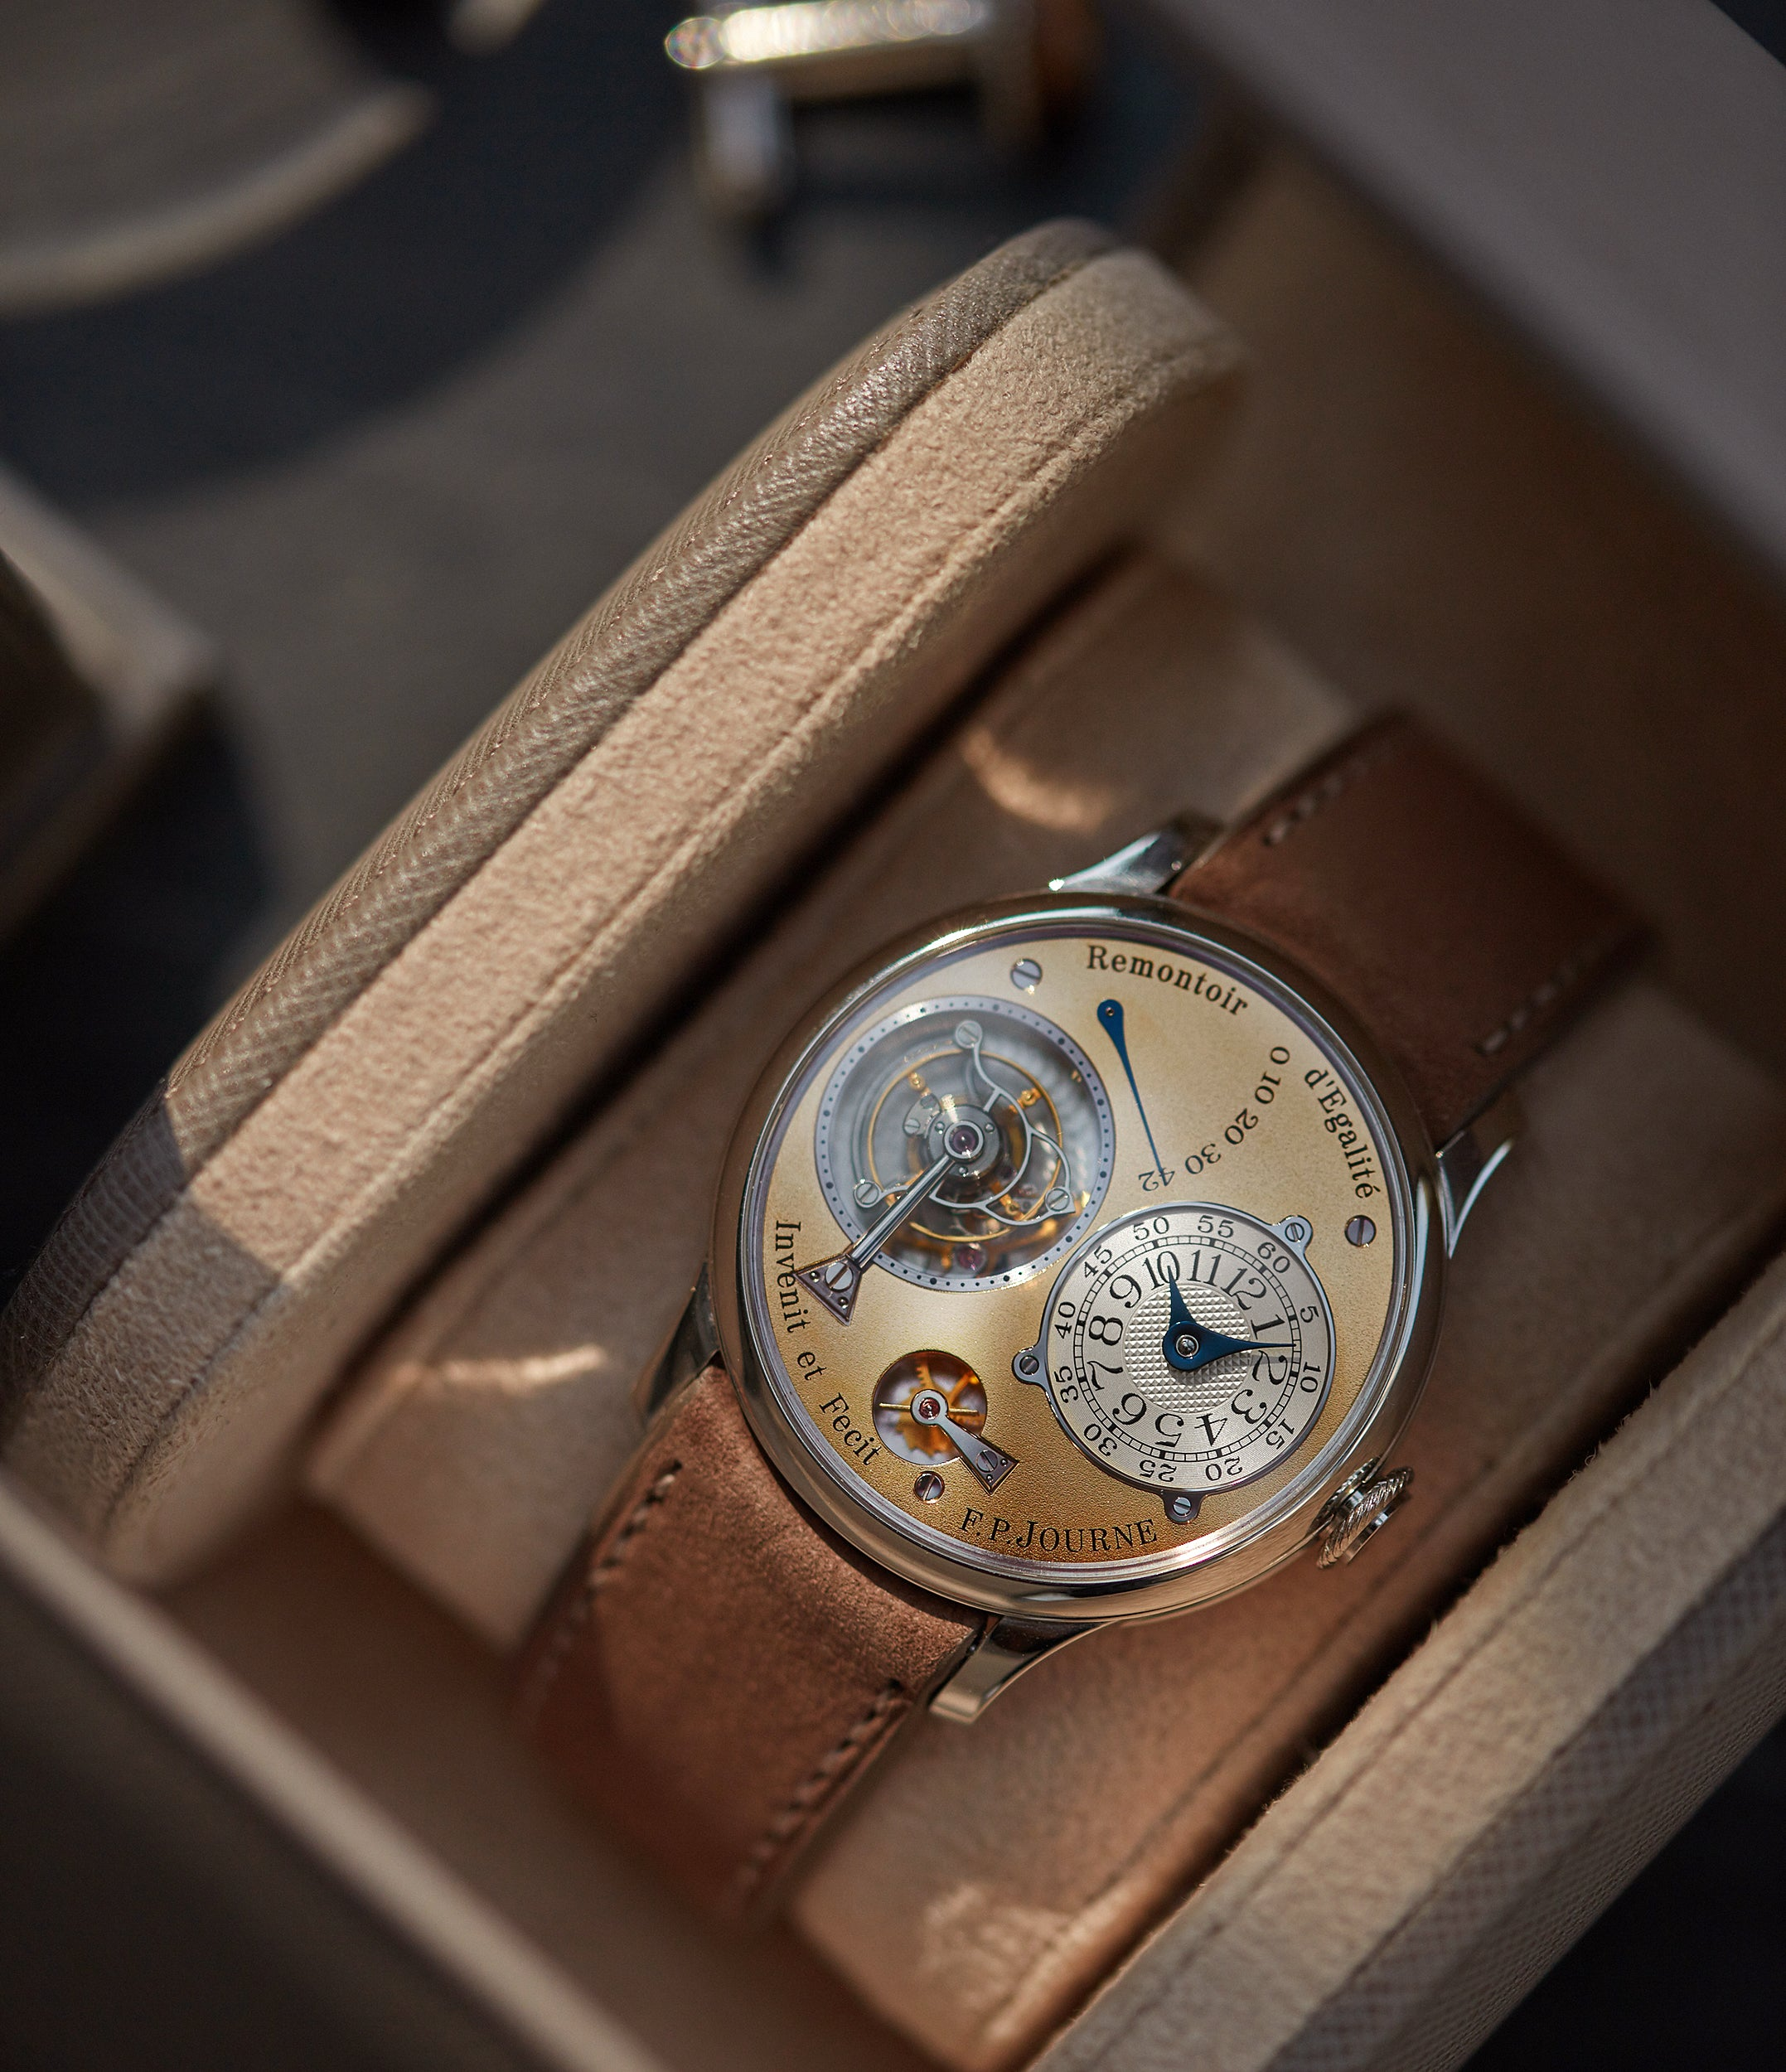 3rd generation F. P. Journe early Tourbillon Souverain 38mm platinum brass movement collectable independent watchmaker for sale online at A Collected Man London specialist of rare watches